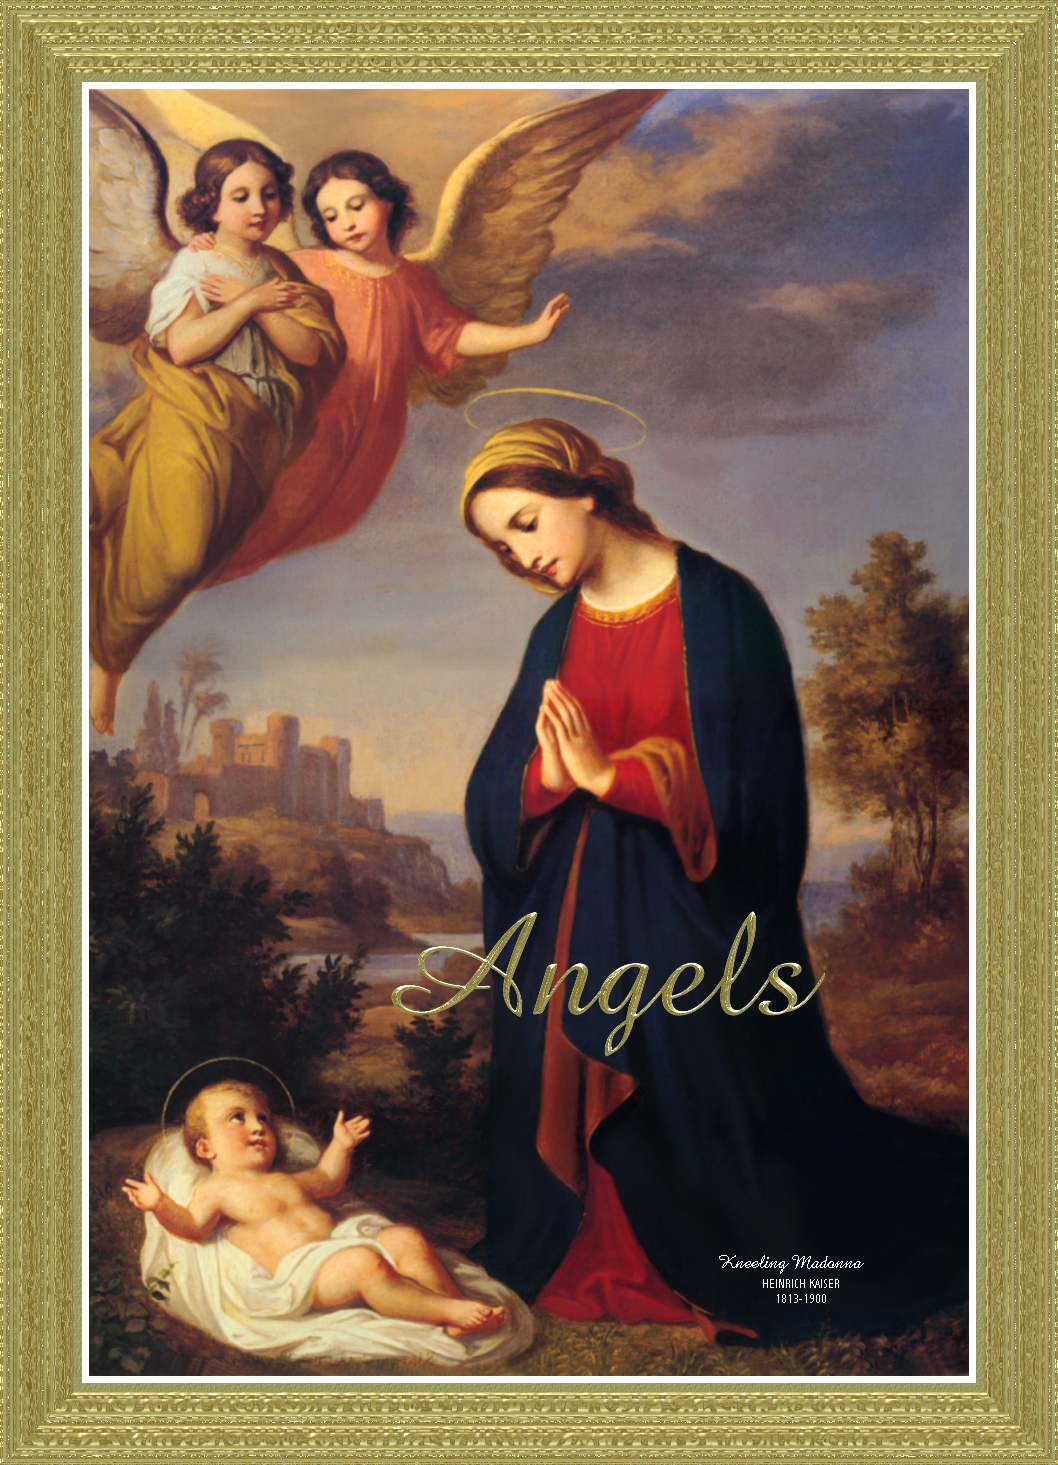 Archangels names and meanings catholic - Archangels Names And Meanings Catholic 12